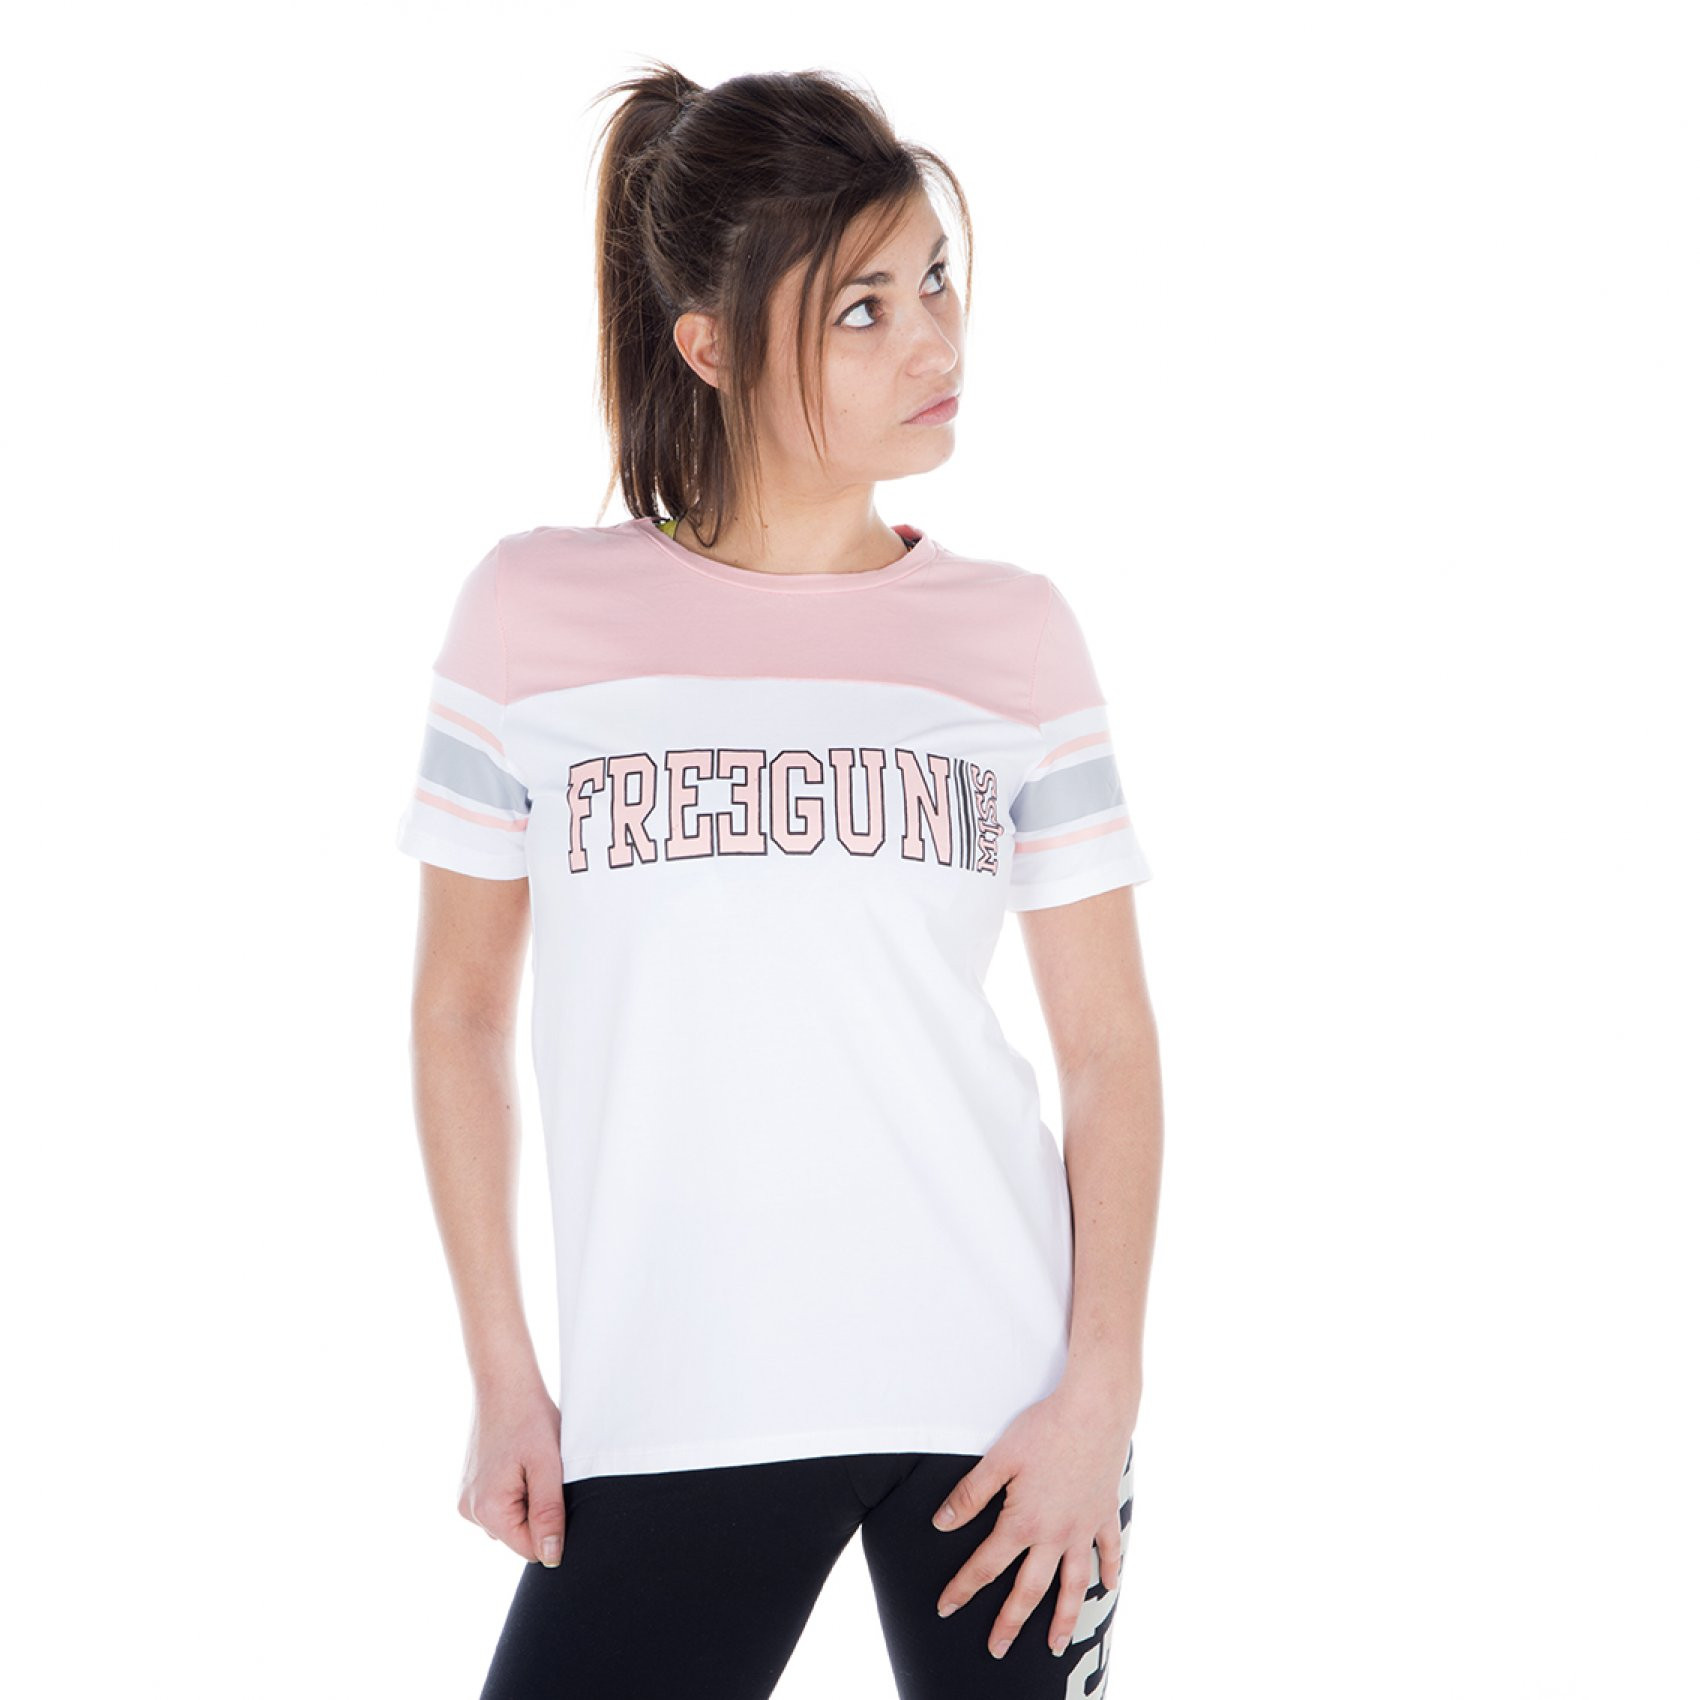 T-shirt manches courtes femme tricolore miss freegun (photo)